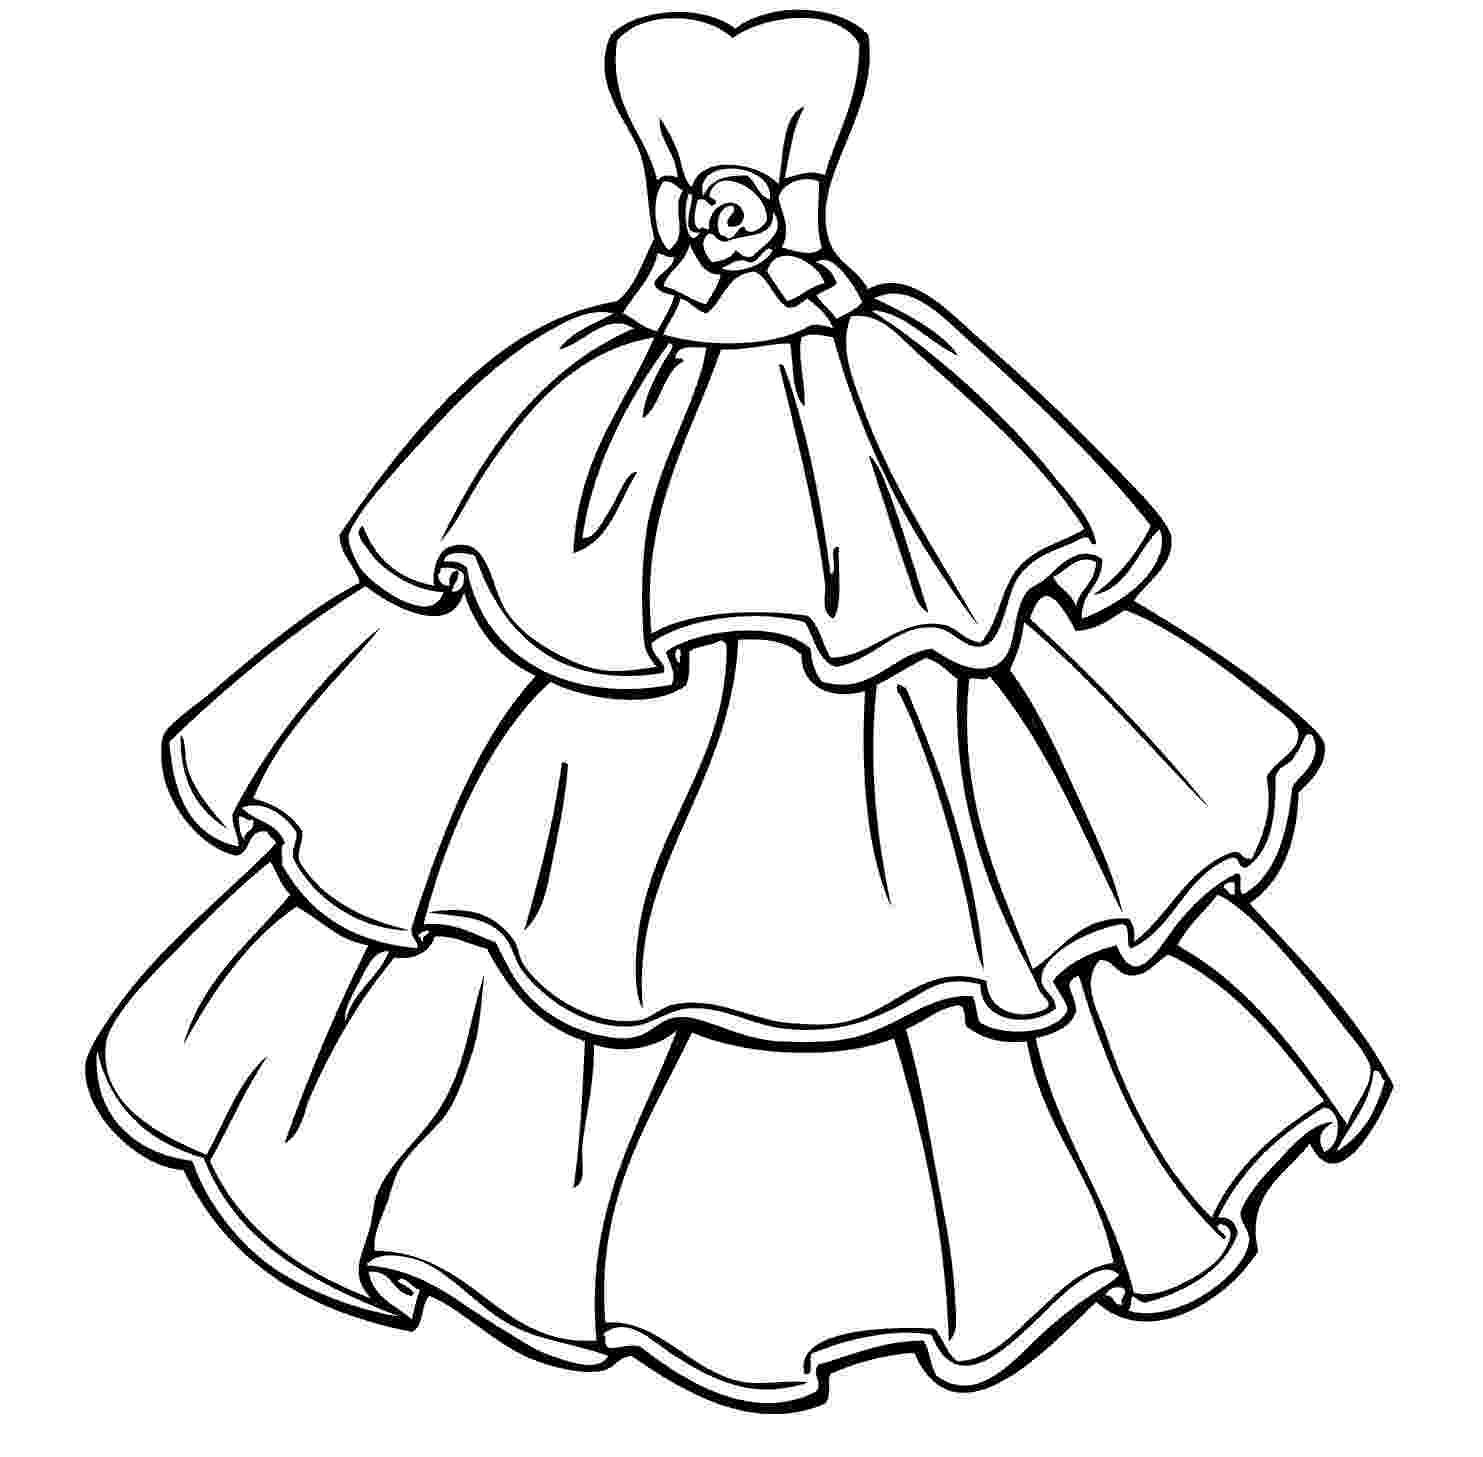 dresses coloring pages dress coloring pages to download and print for free pages coloring dresses